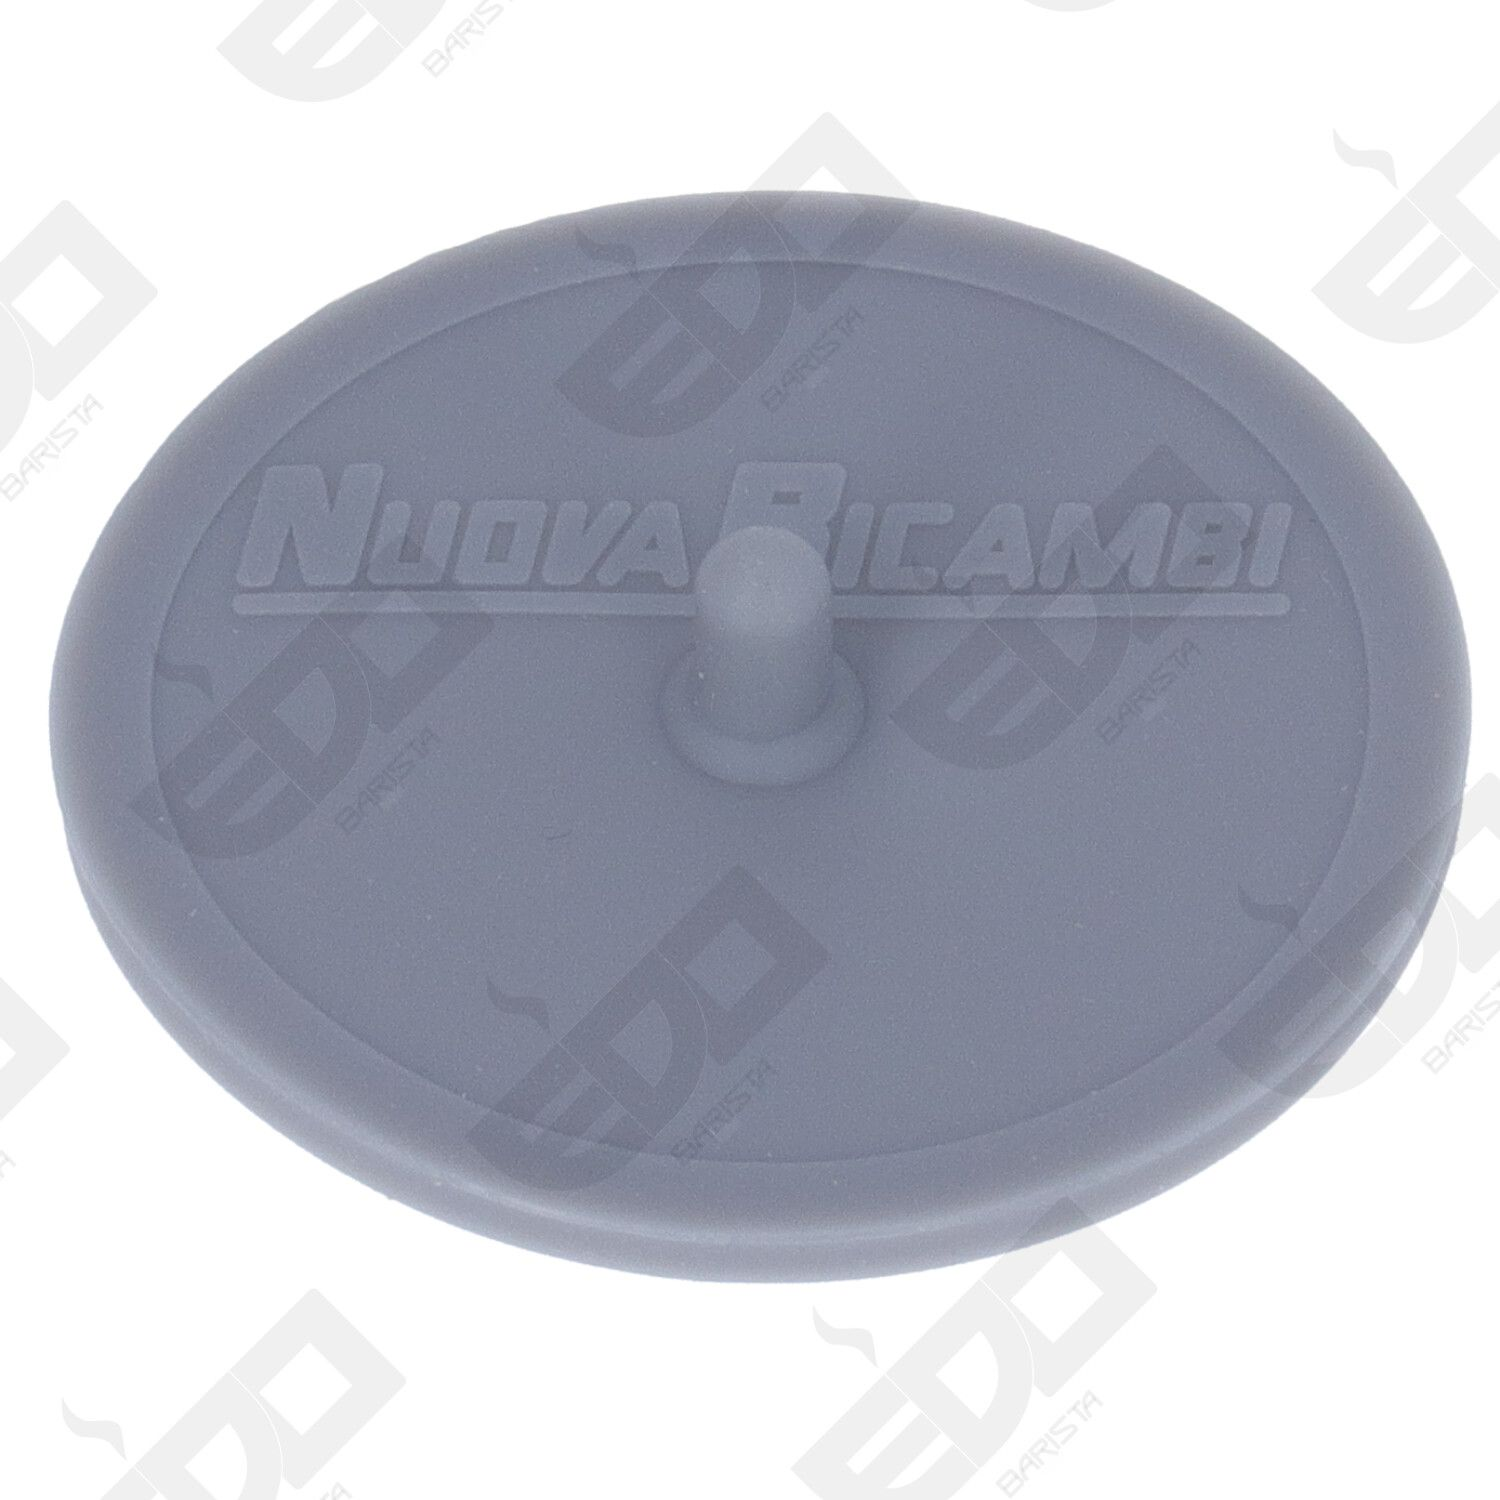 RUBBER DISC FOR CLEAN EXPRESS